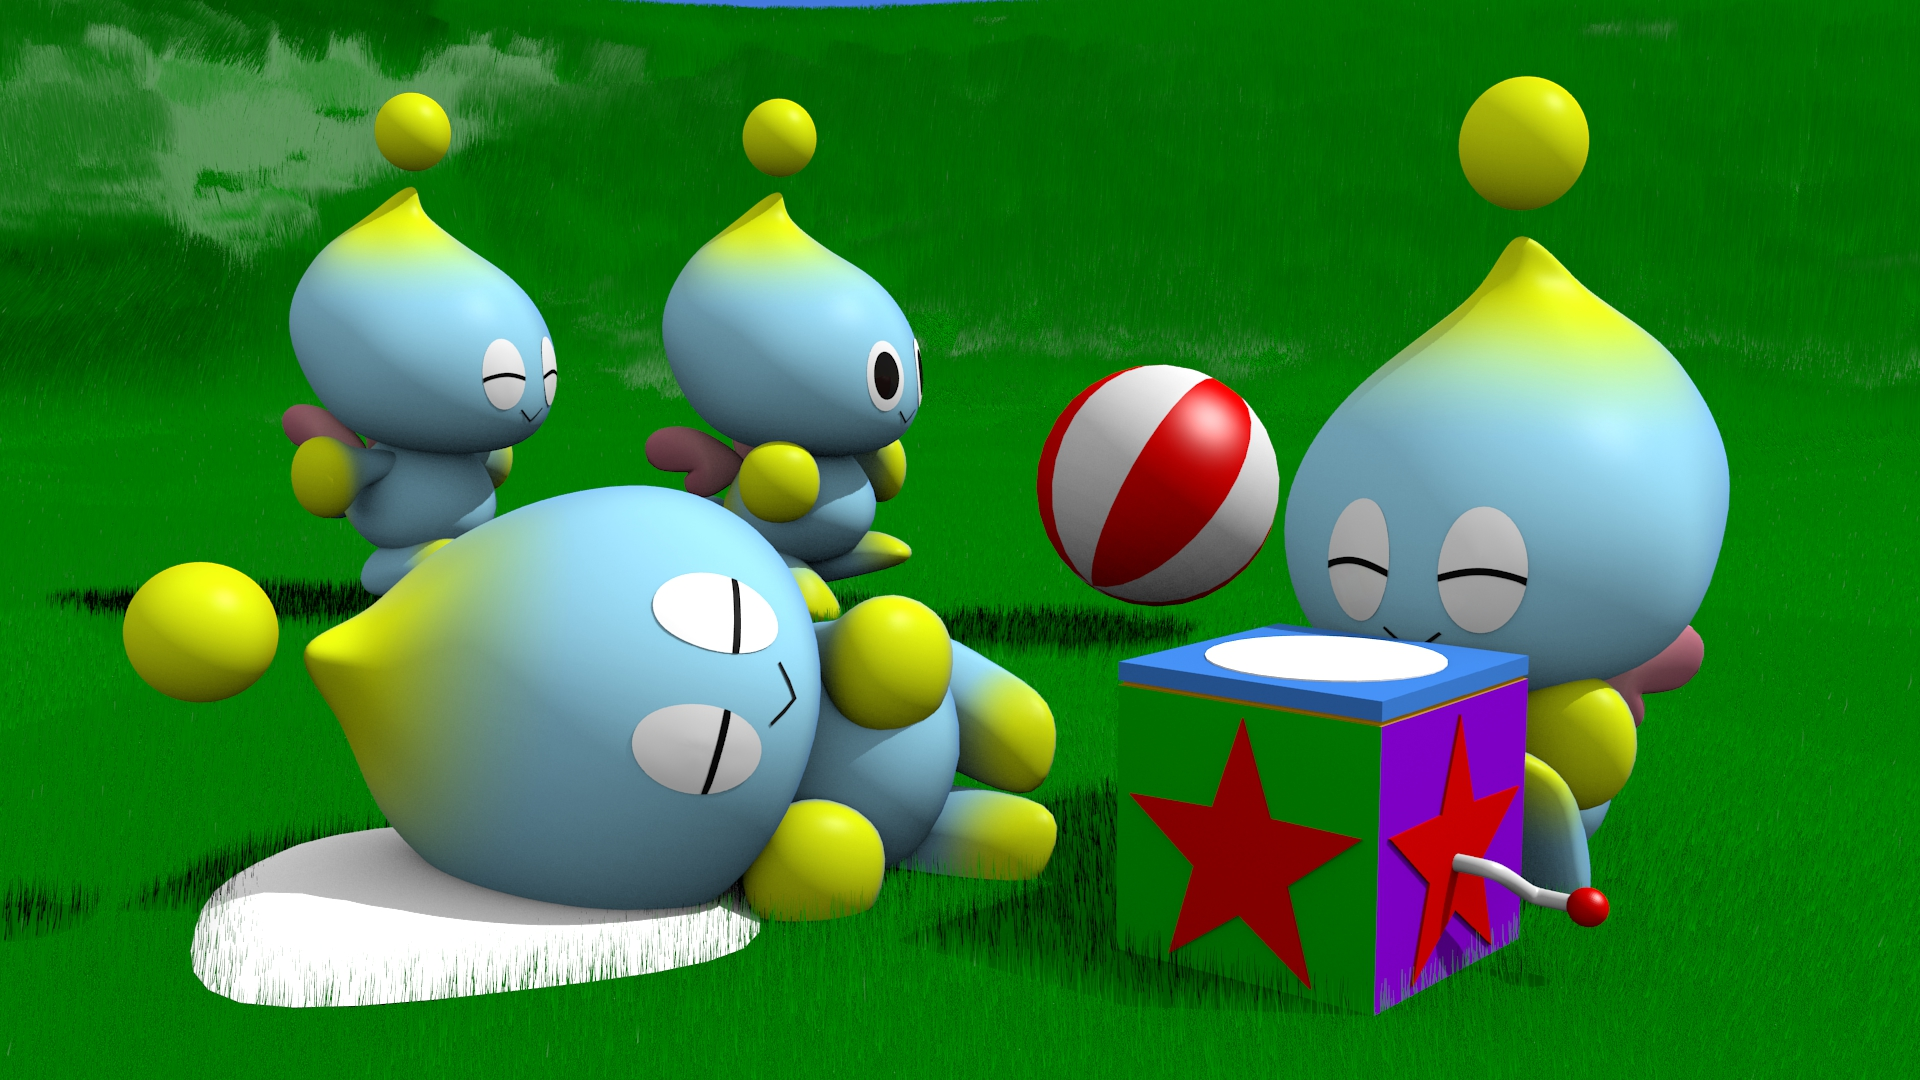 Chao 2 By Mikiel2171 On Deviantart